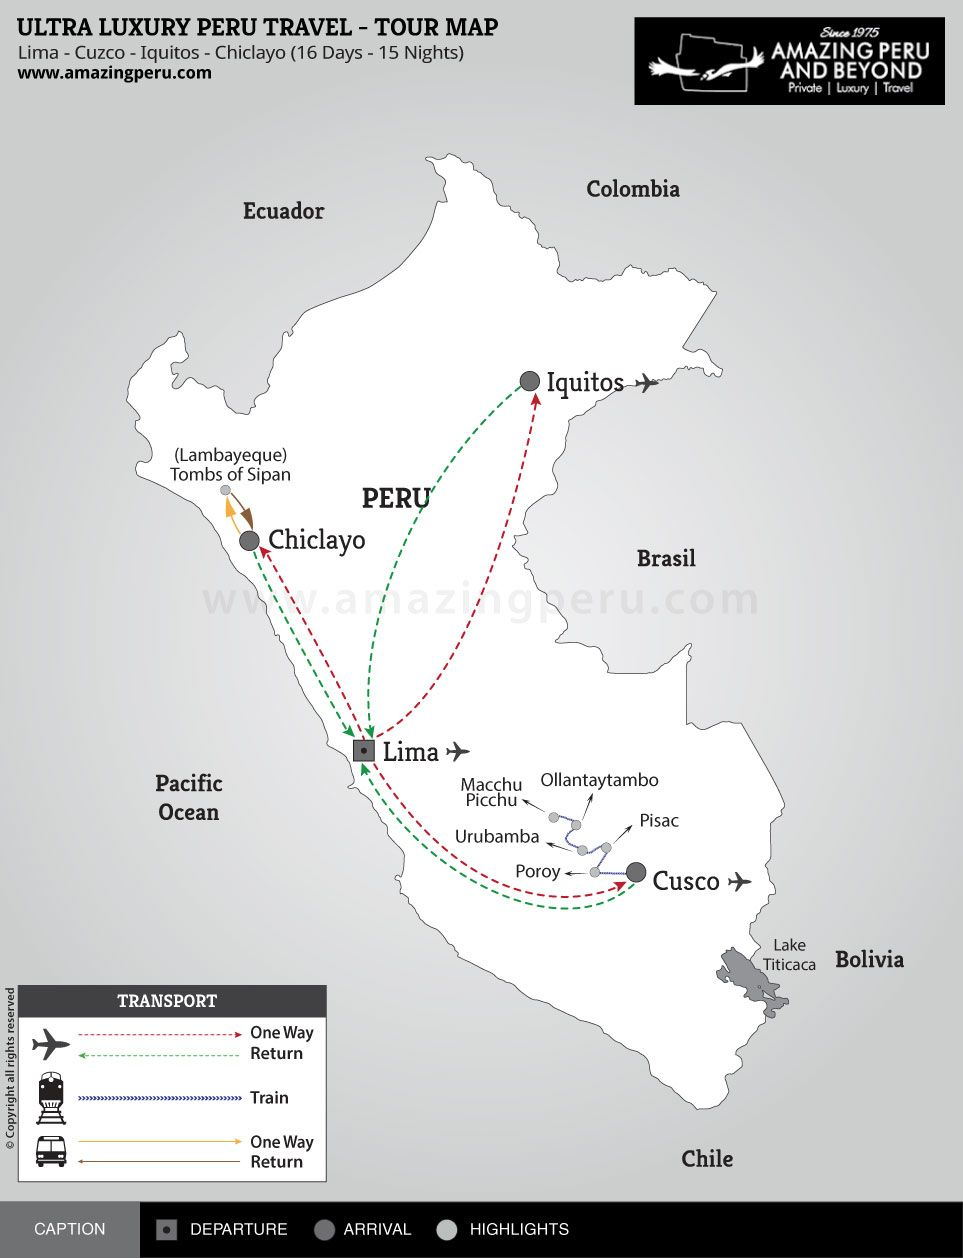 Ultra Luxury Peru Travel - A living experience - 16 days / 15 nights.